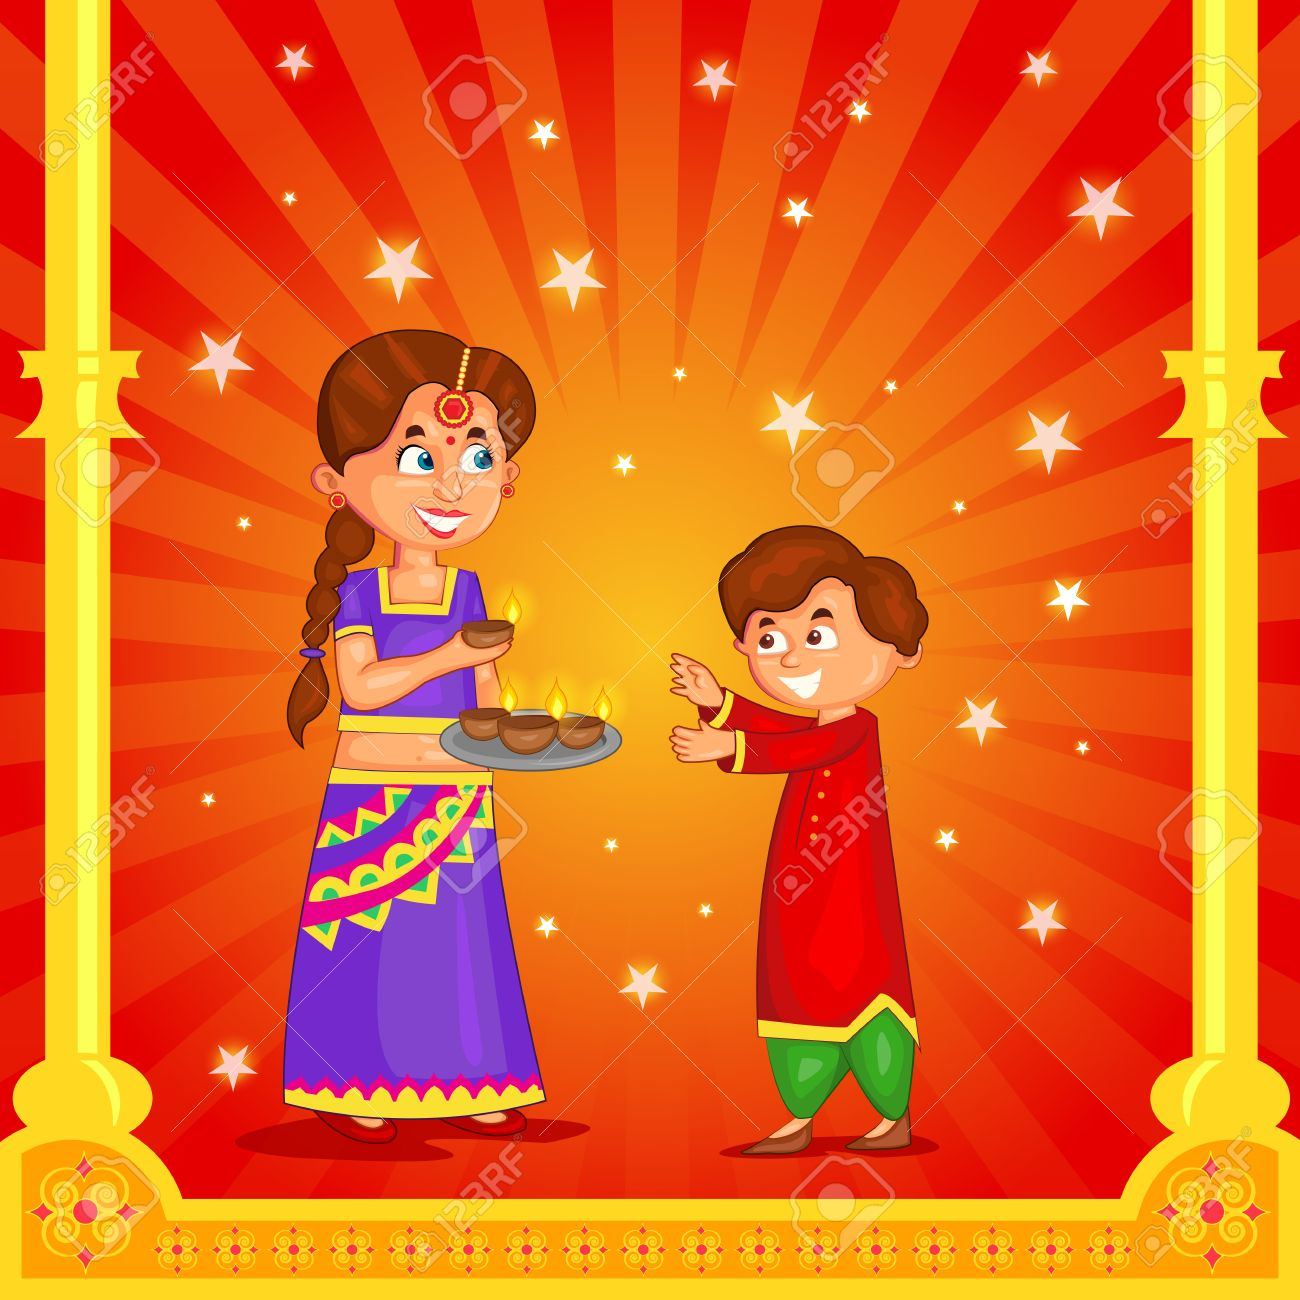 Kids With Diya Celebrating Diwali In Vector Royalty Free Cliparts ... for Deepavali Celebration Clipart  110zmd